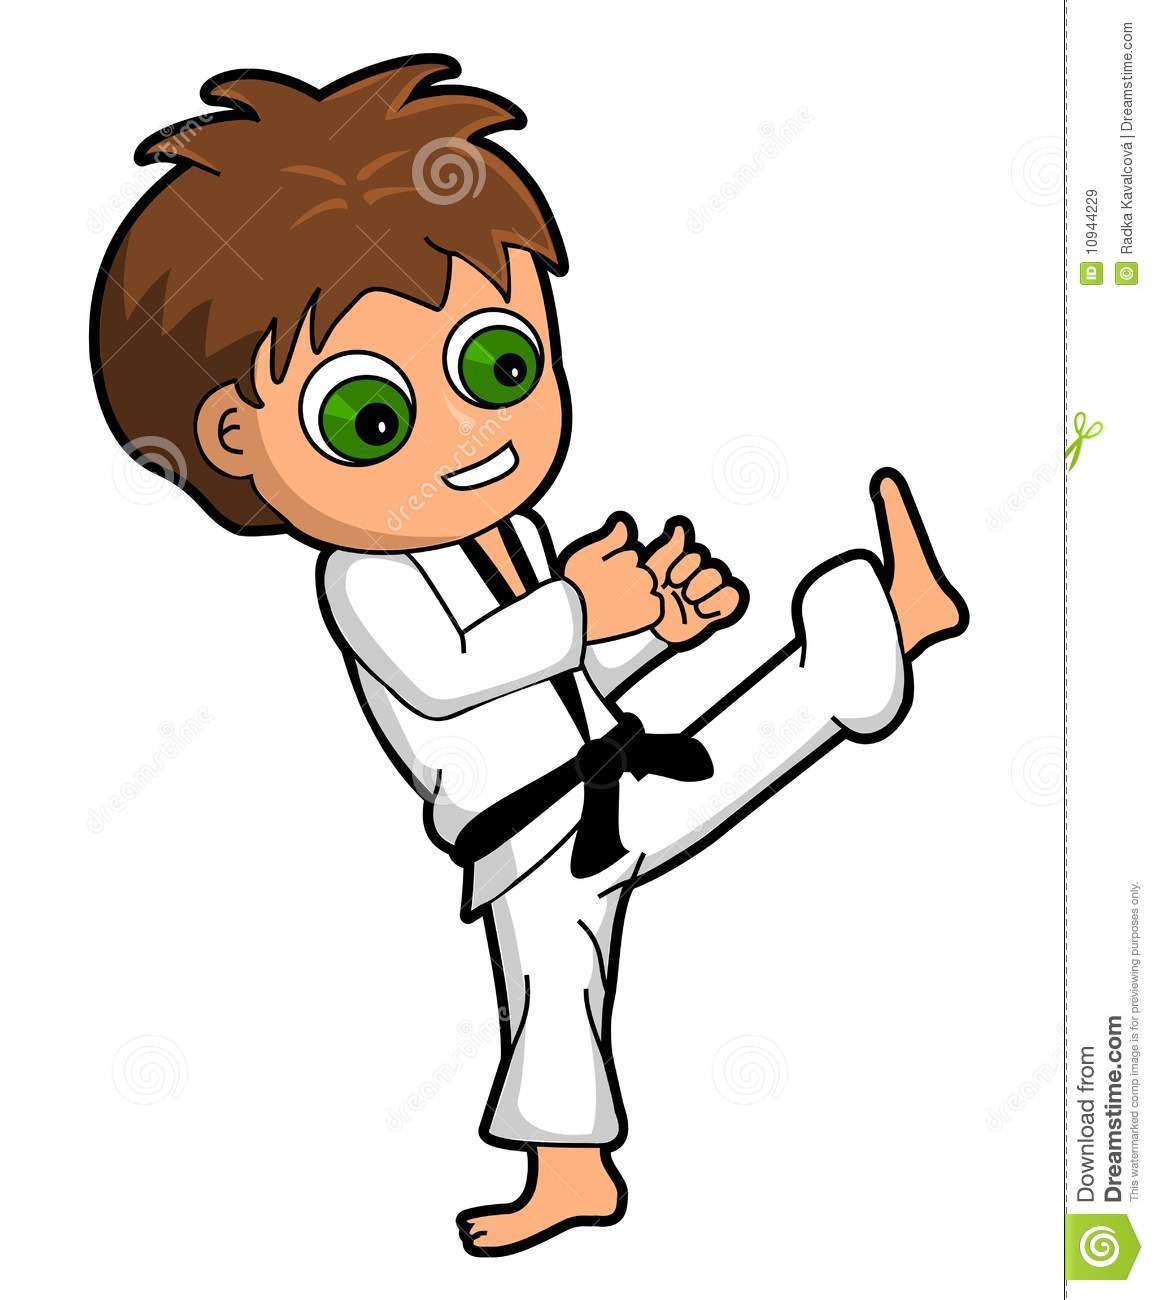 Karate boy clipart